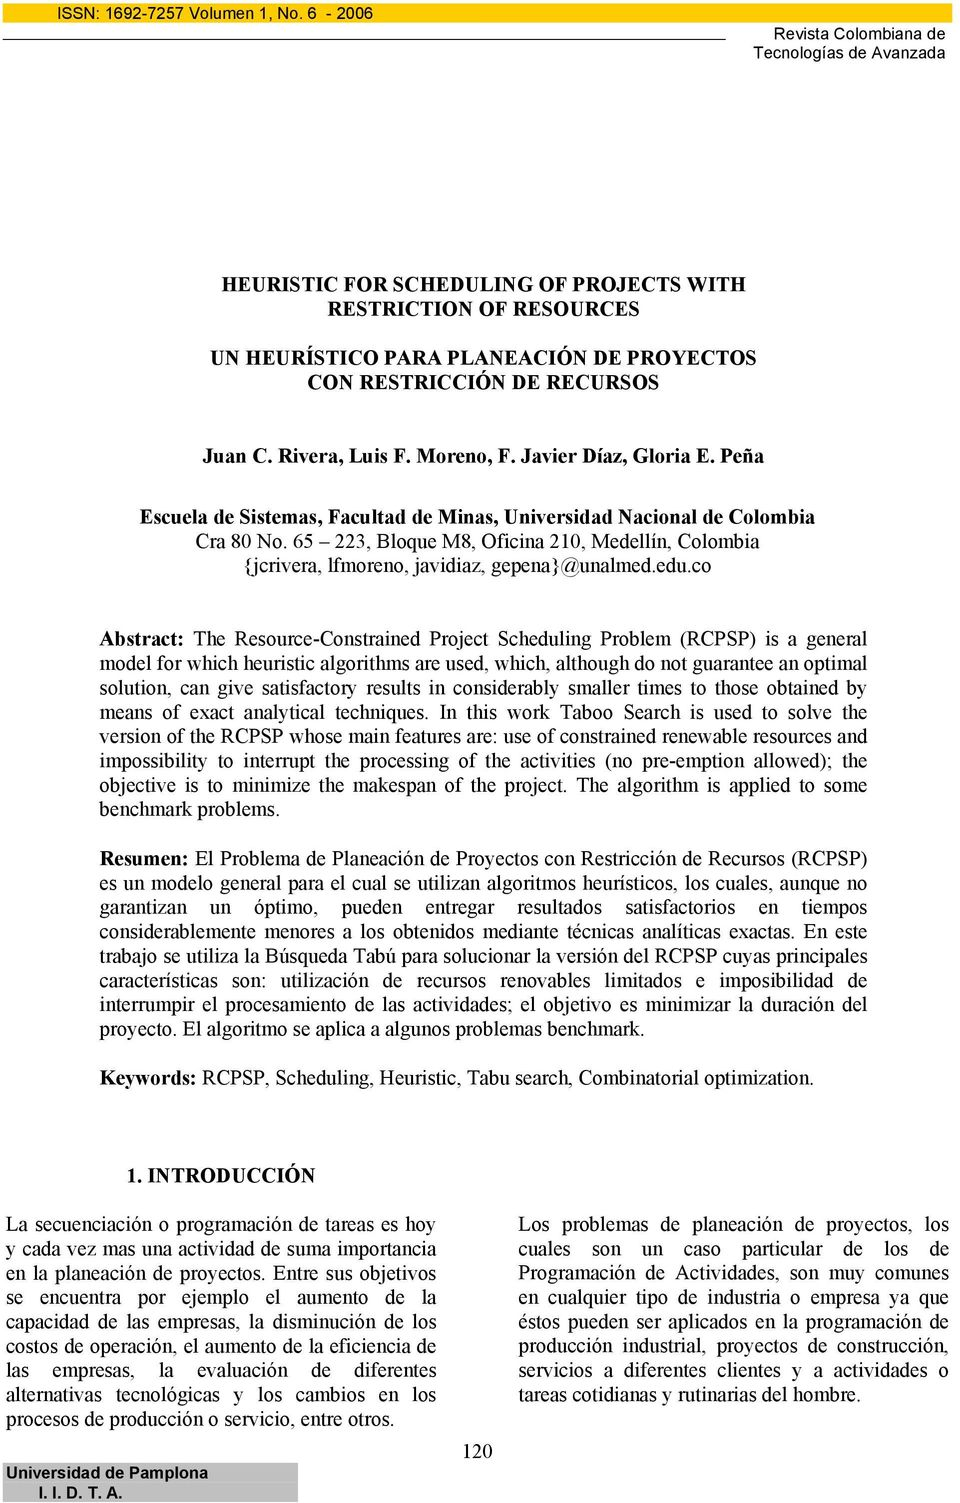 co Abstract: The Resource-Constrained Project Scheduling Problem (RCPSP) is a general model for which heuristic algorithms are used, which, although do not guarantee an optimal solution, can give